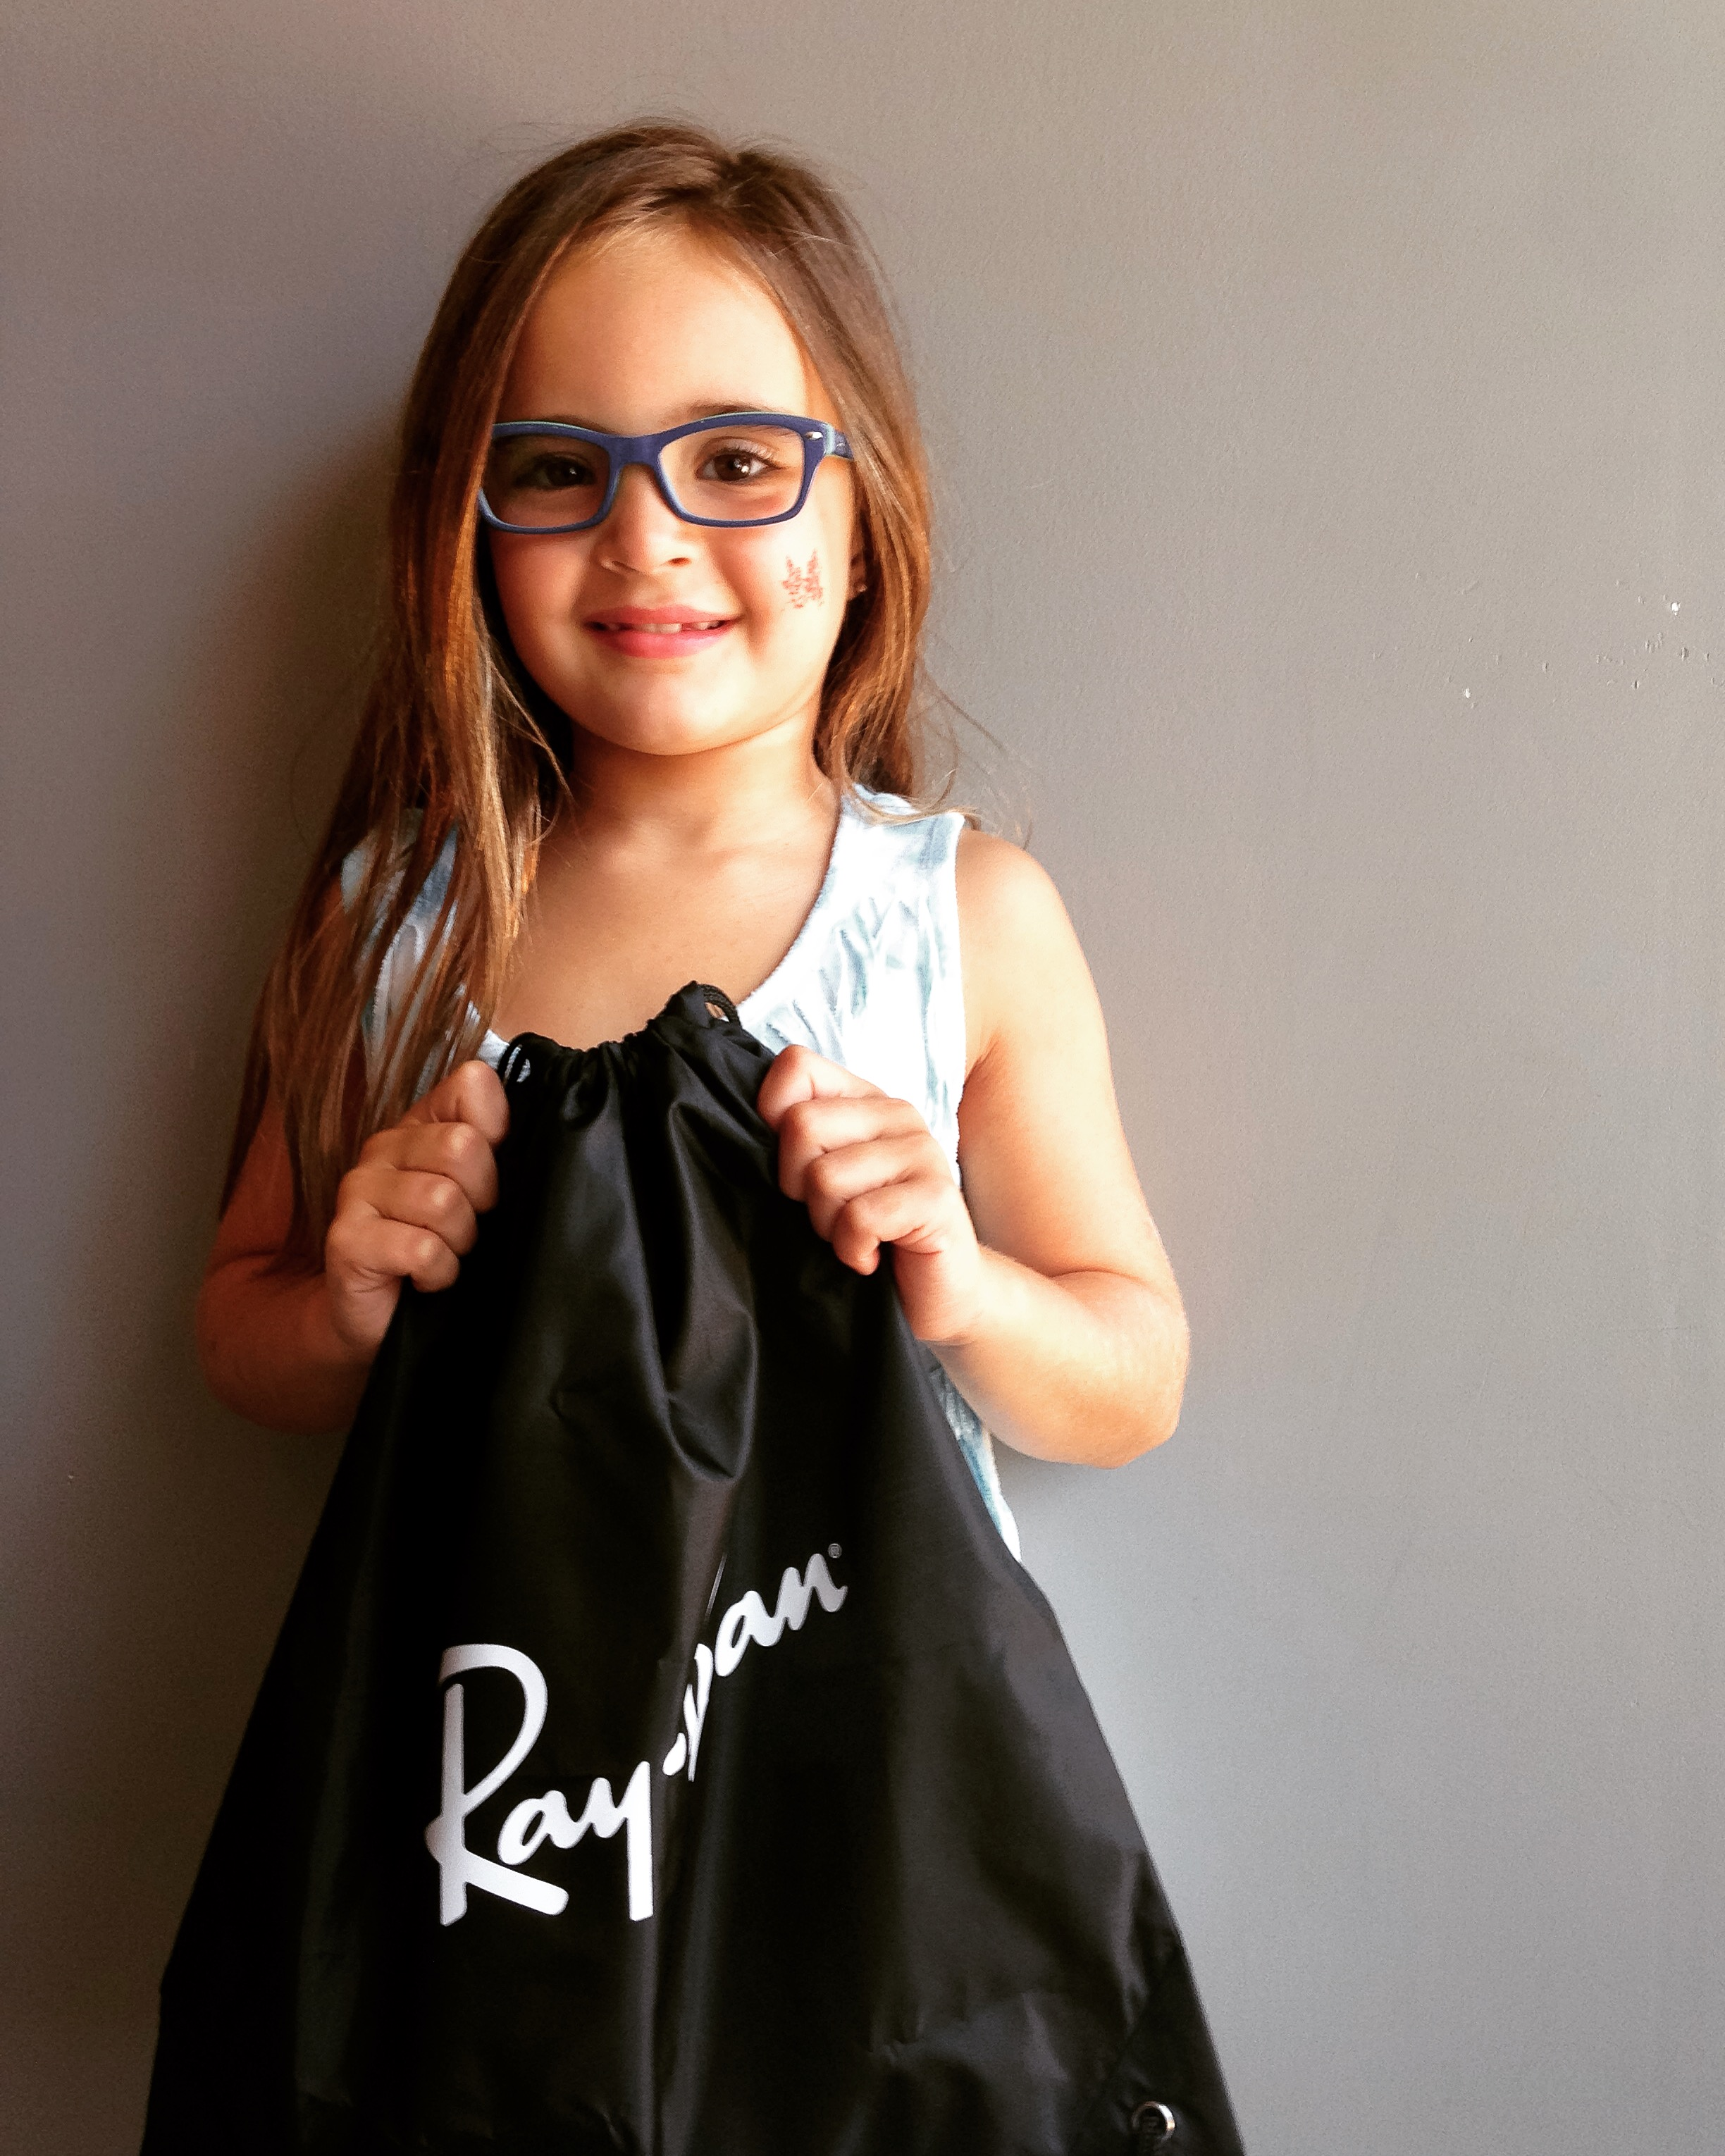 This little cutie in her RayBan